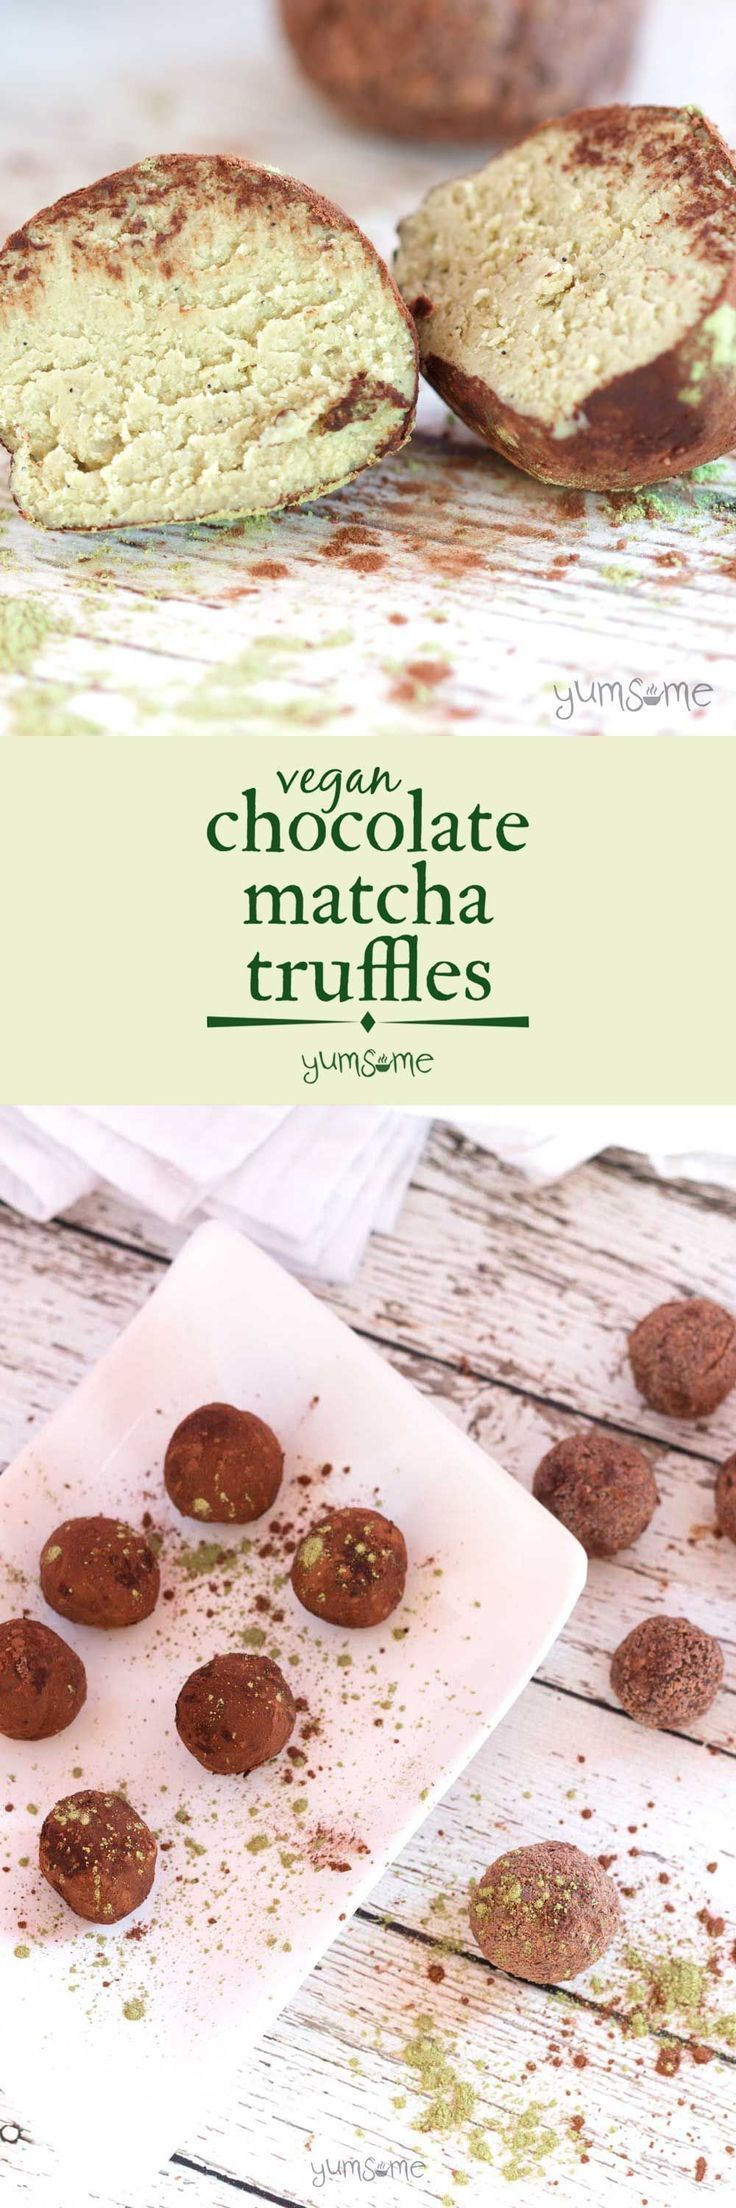 These #cashew-based #vegan #chocolate #matcha #truffles are light and creamy, with a delicately refreshing #green #tea flavour. They're so decadent! | yumsome.com via @yums0me